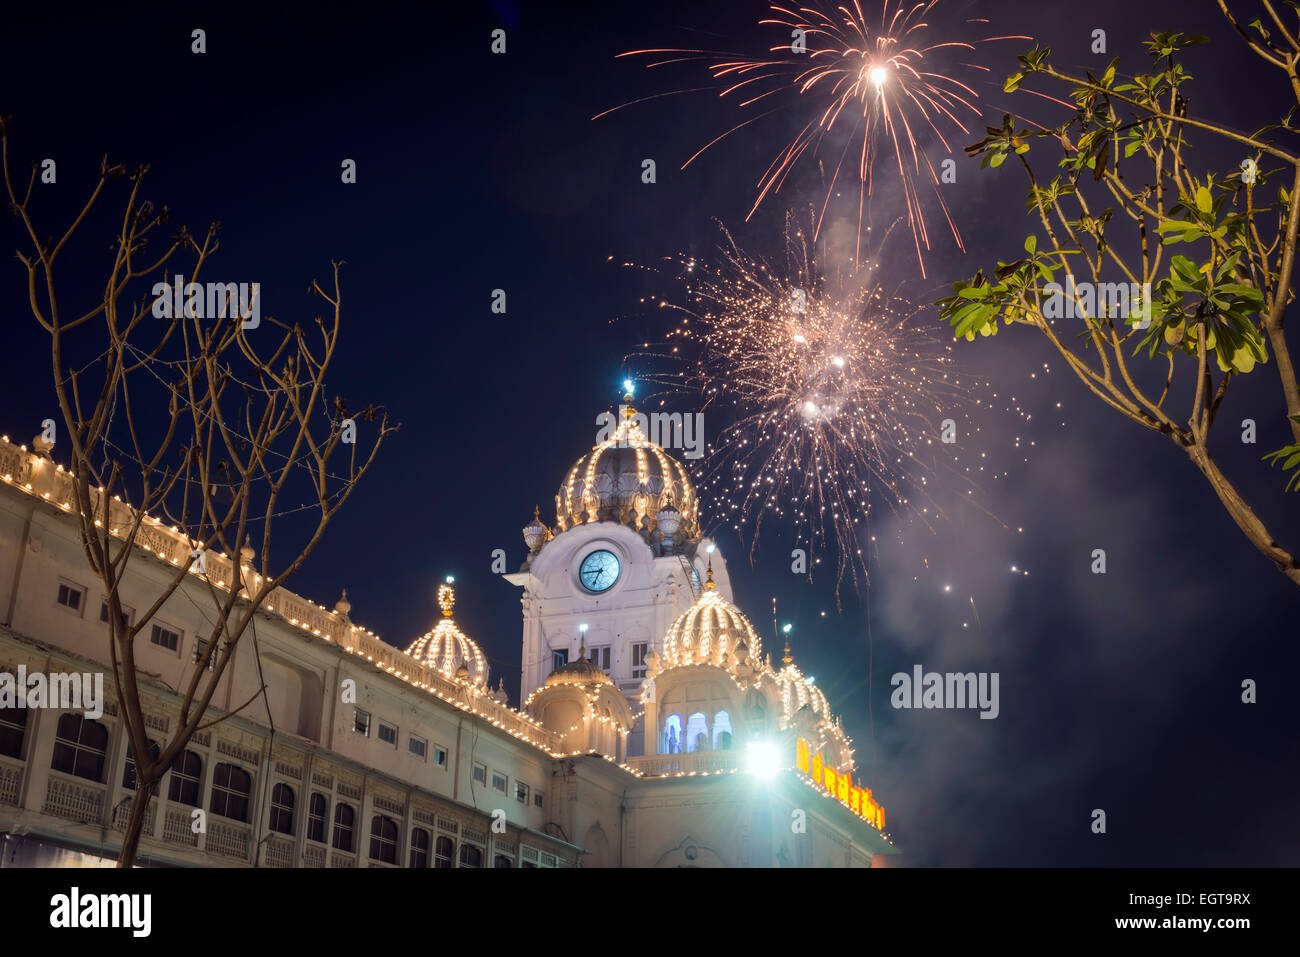 Fireworks exploding over The Golden Temple, Amritsar, Punjab, India - Stock Image